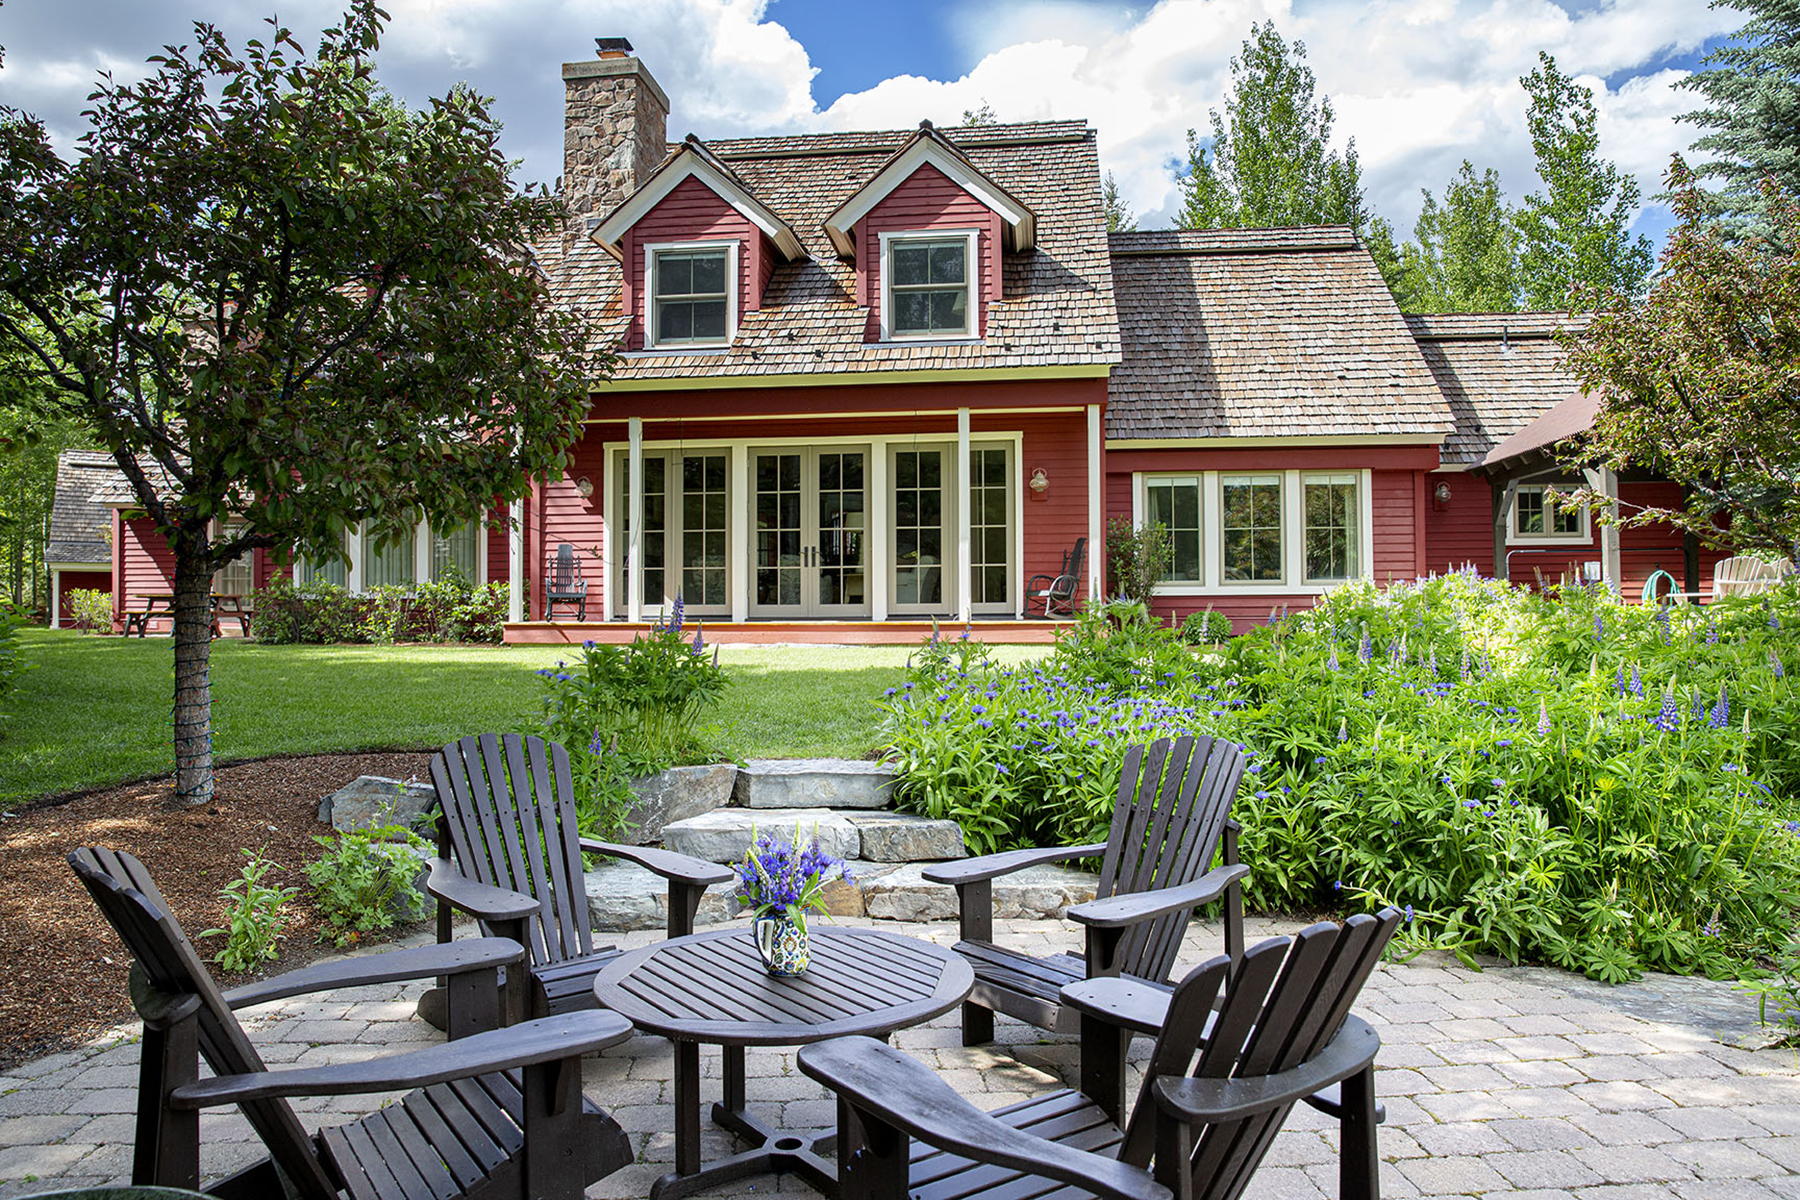 Single Family Homes for Sale at Charming Riverfront Farmhouse-Inspired Home 107 Chocolate Gulch Rd Ketchum, Idaho 83340 United States